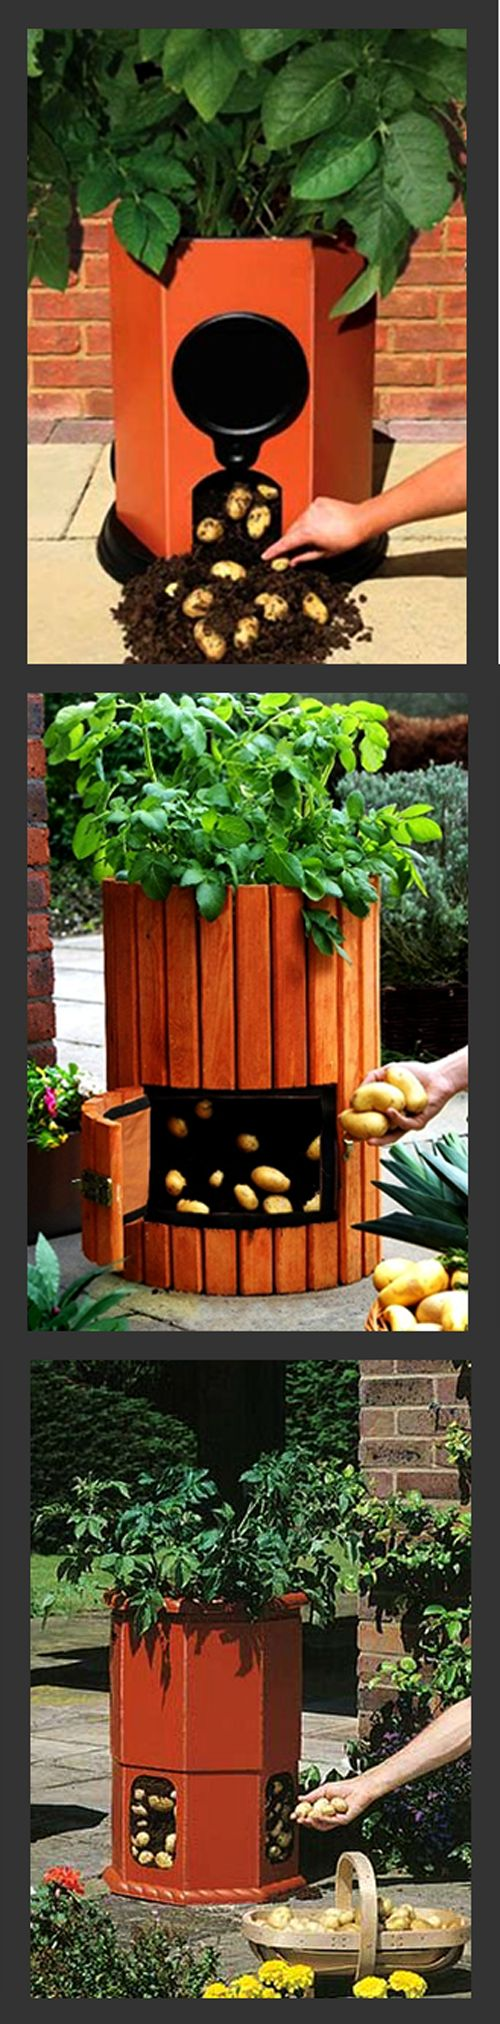 Best 25+ Grow potatoes ideas on Pinterest | Planting potatoes ...